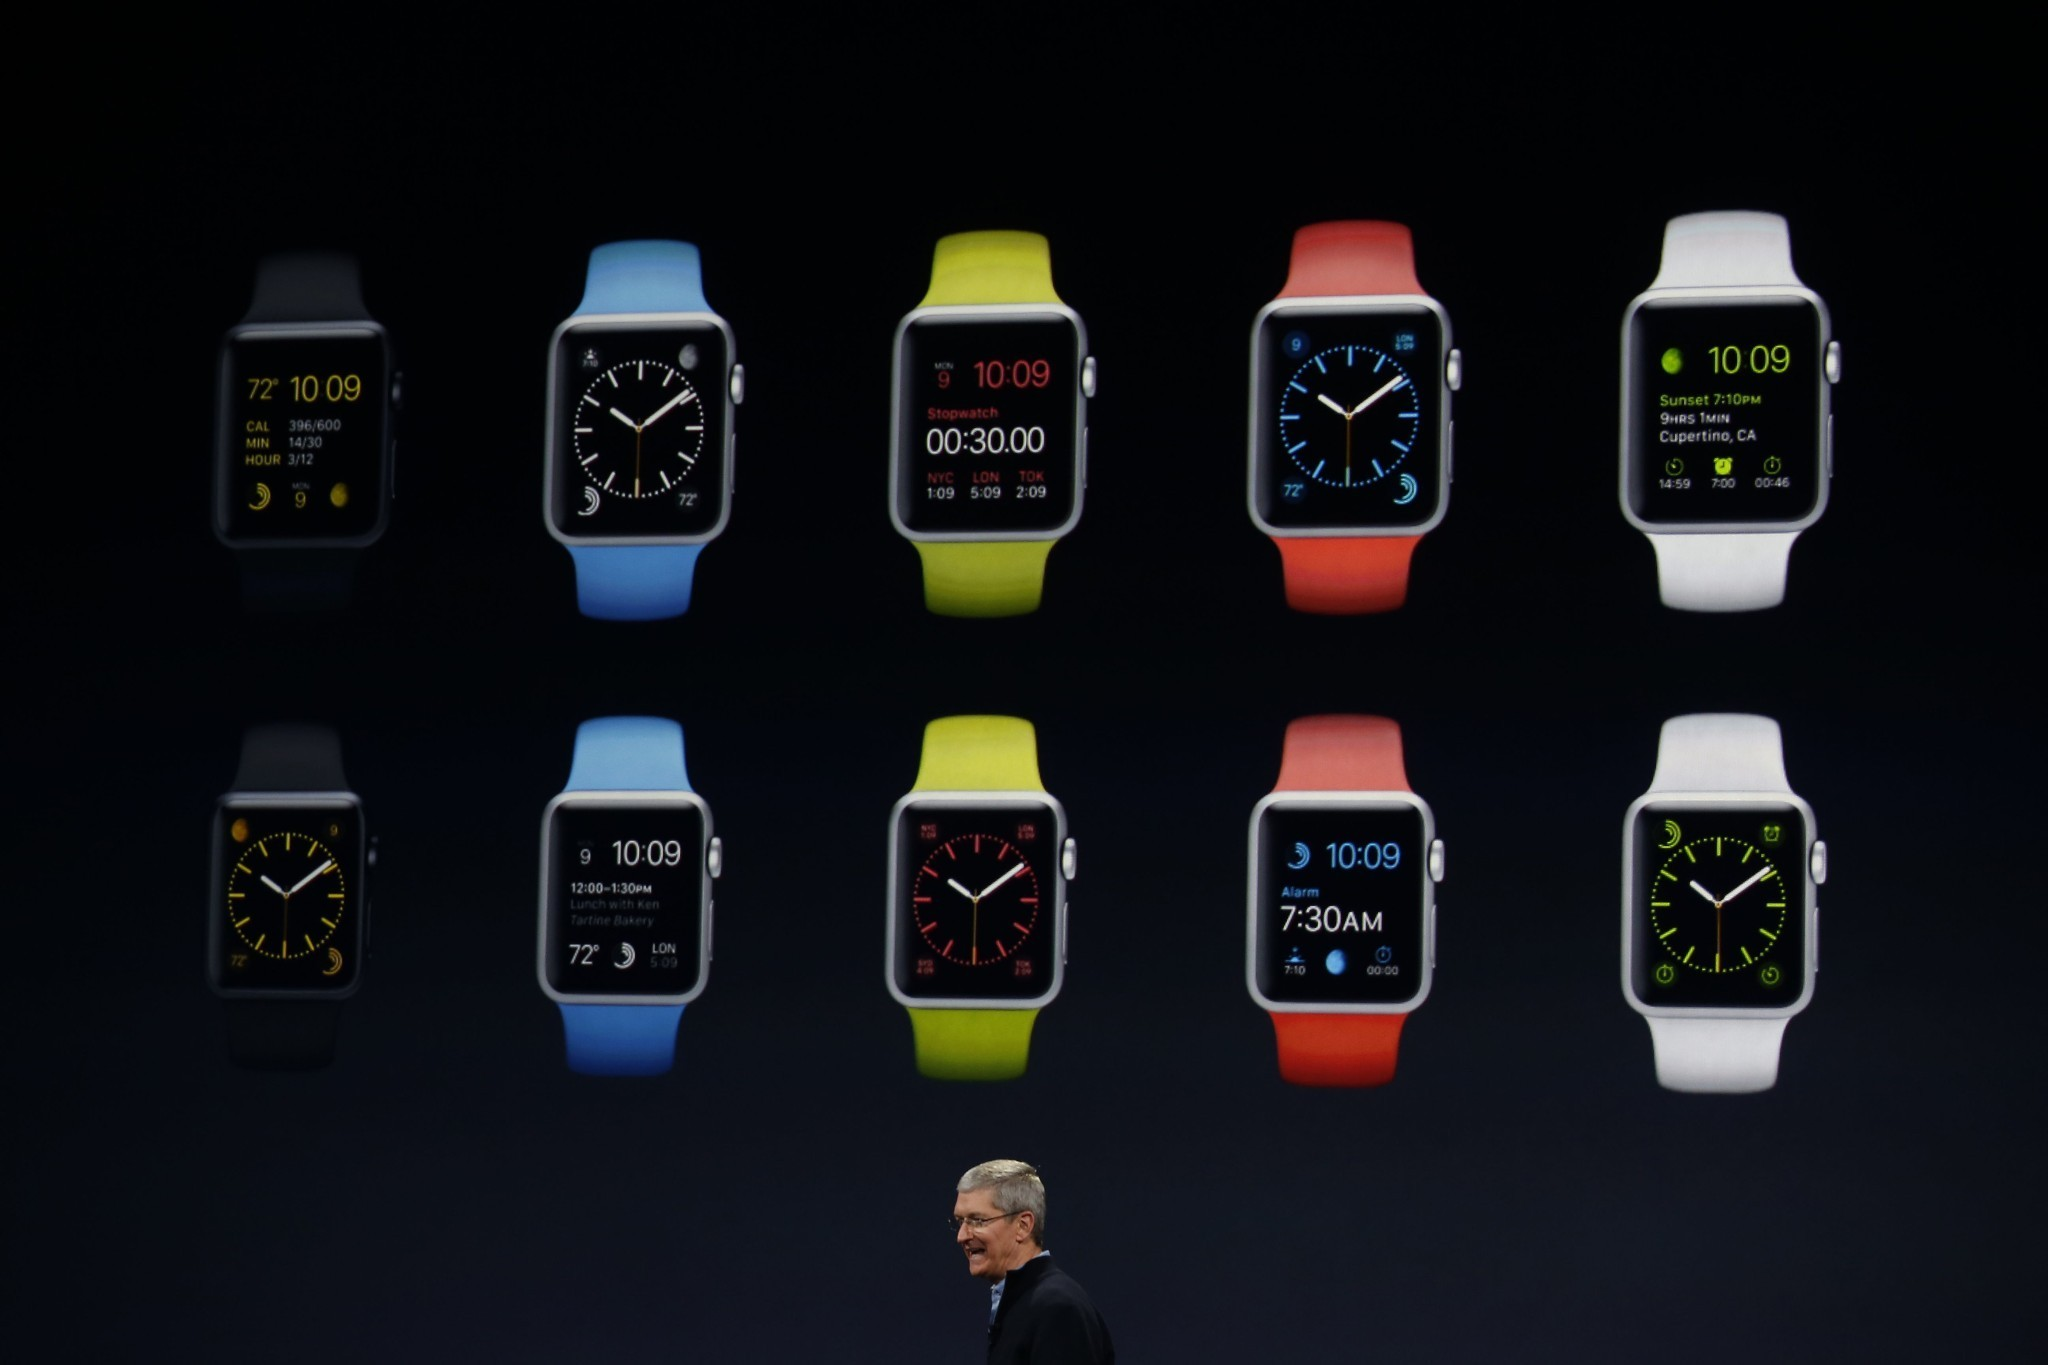 Apple Watch will take 150 minutes to charge fully